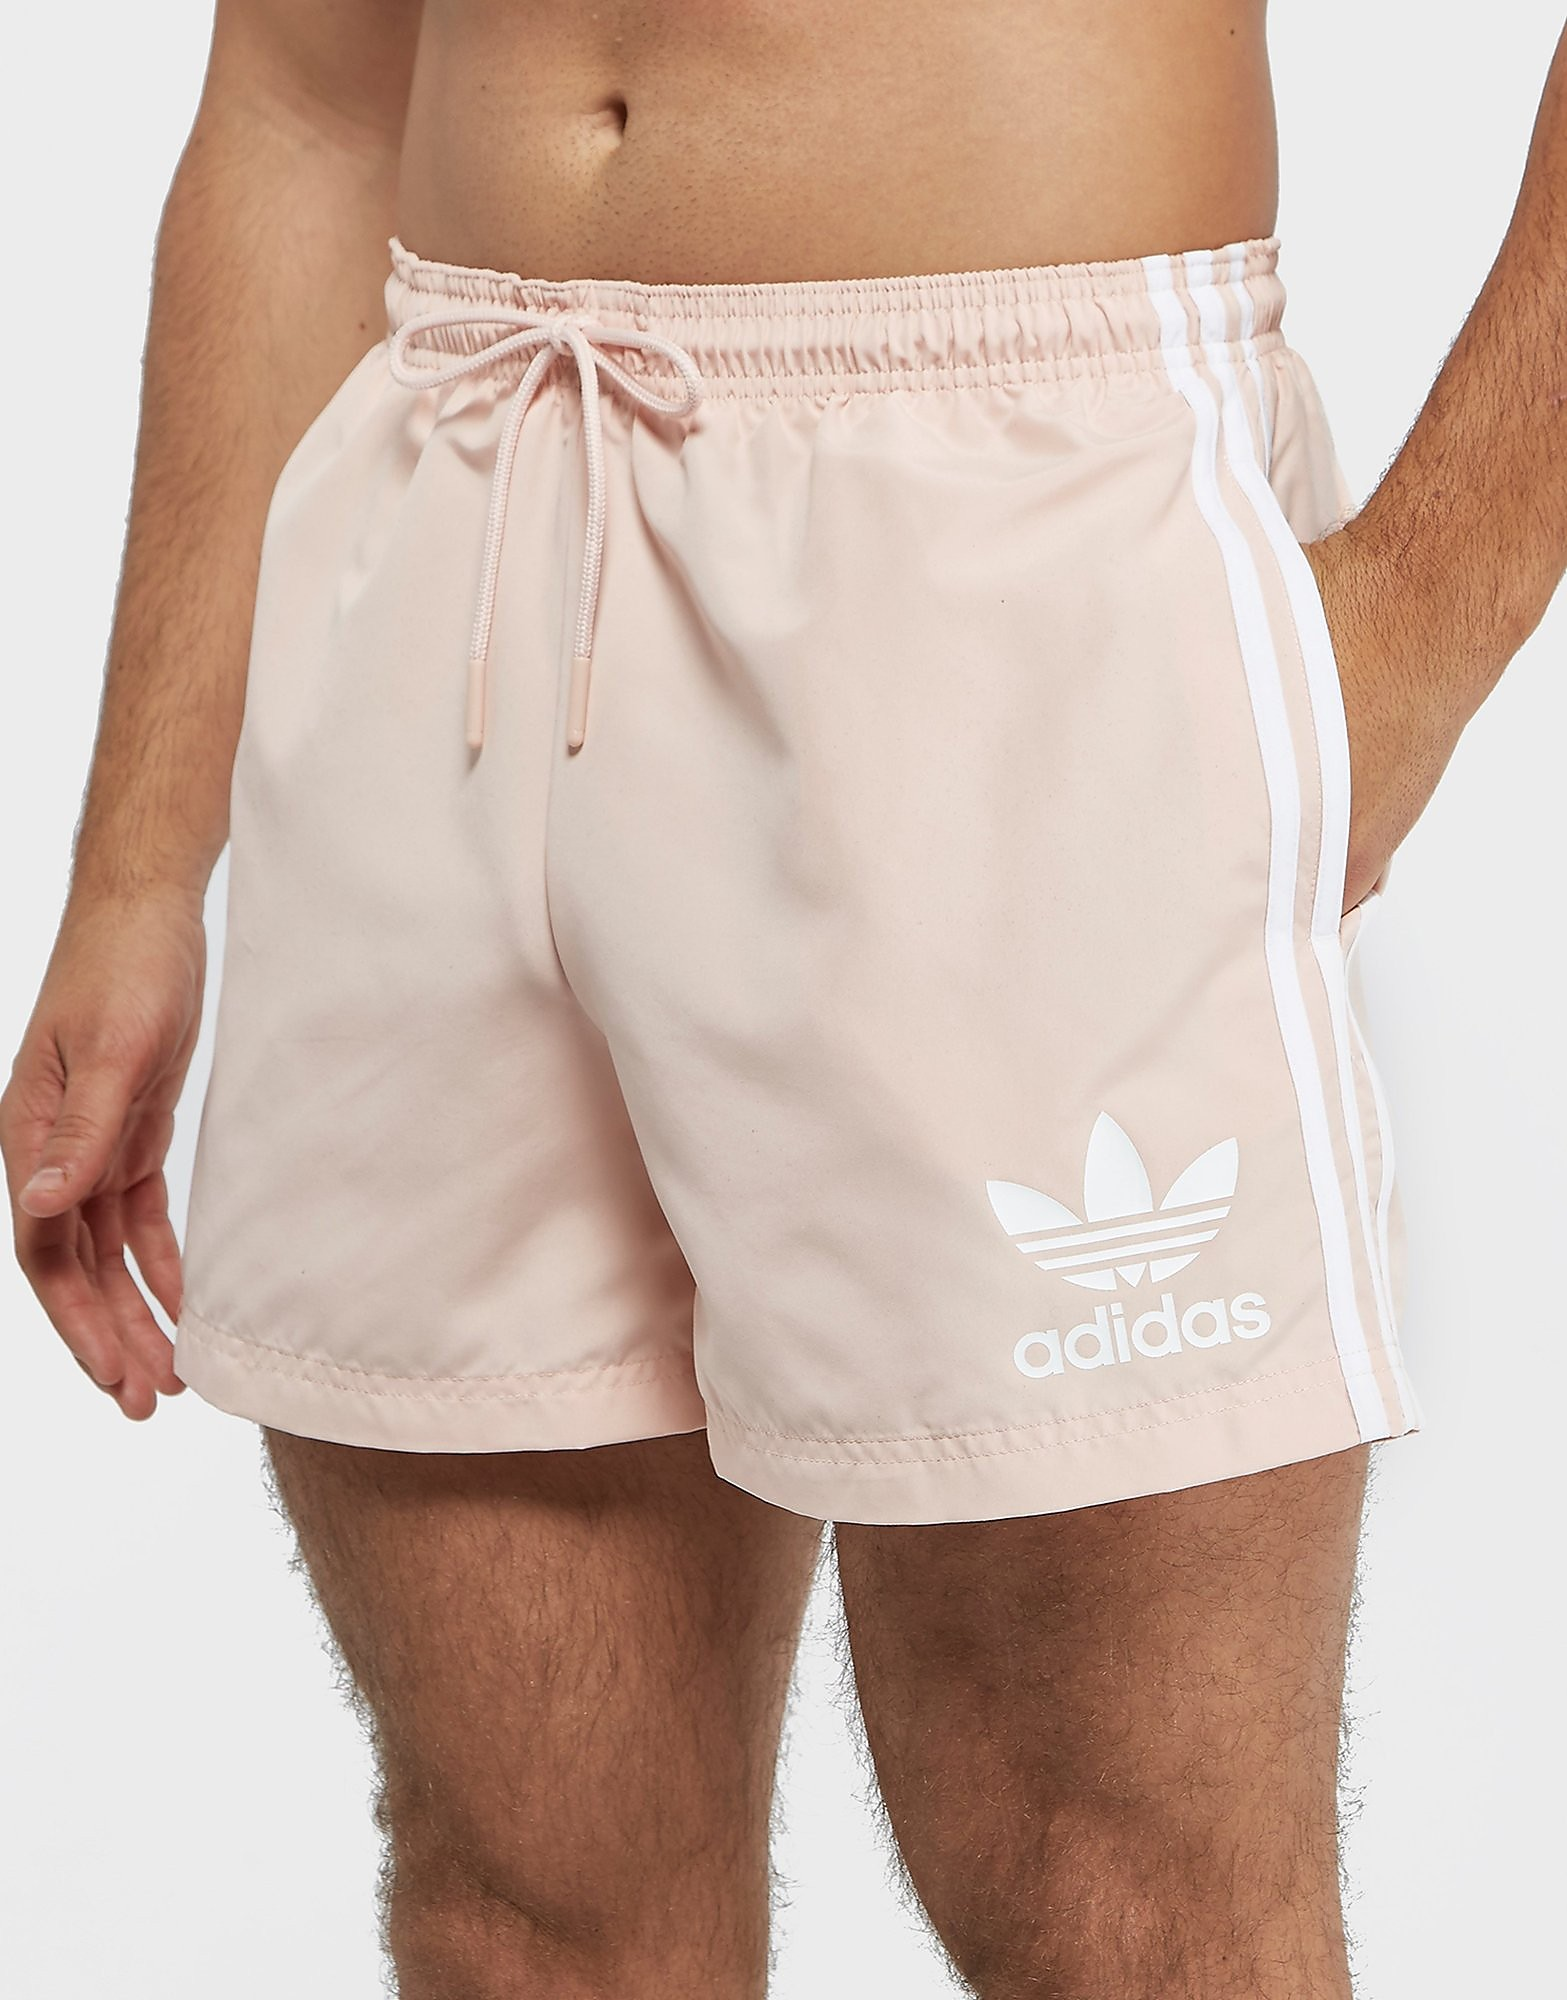 adidas Originals Cali Swim Short